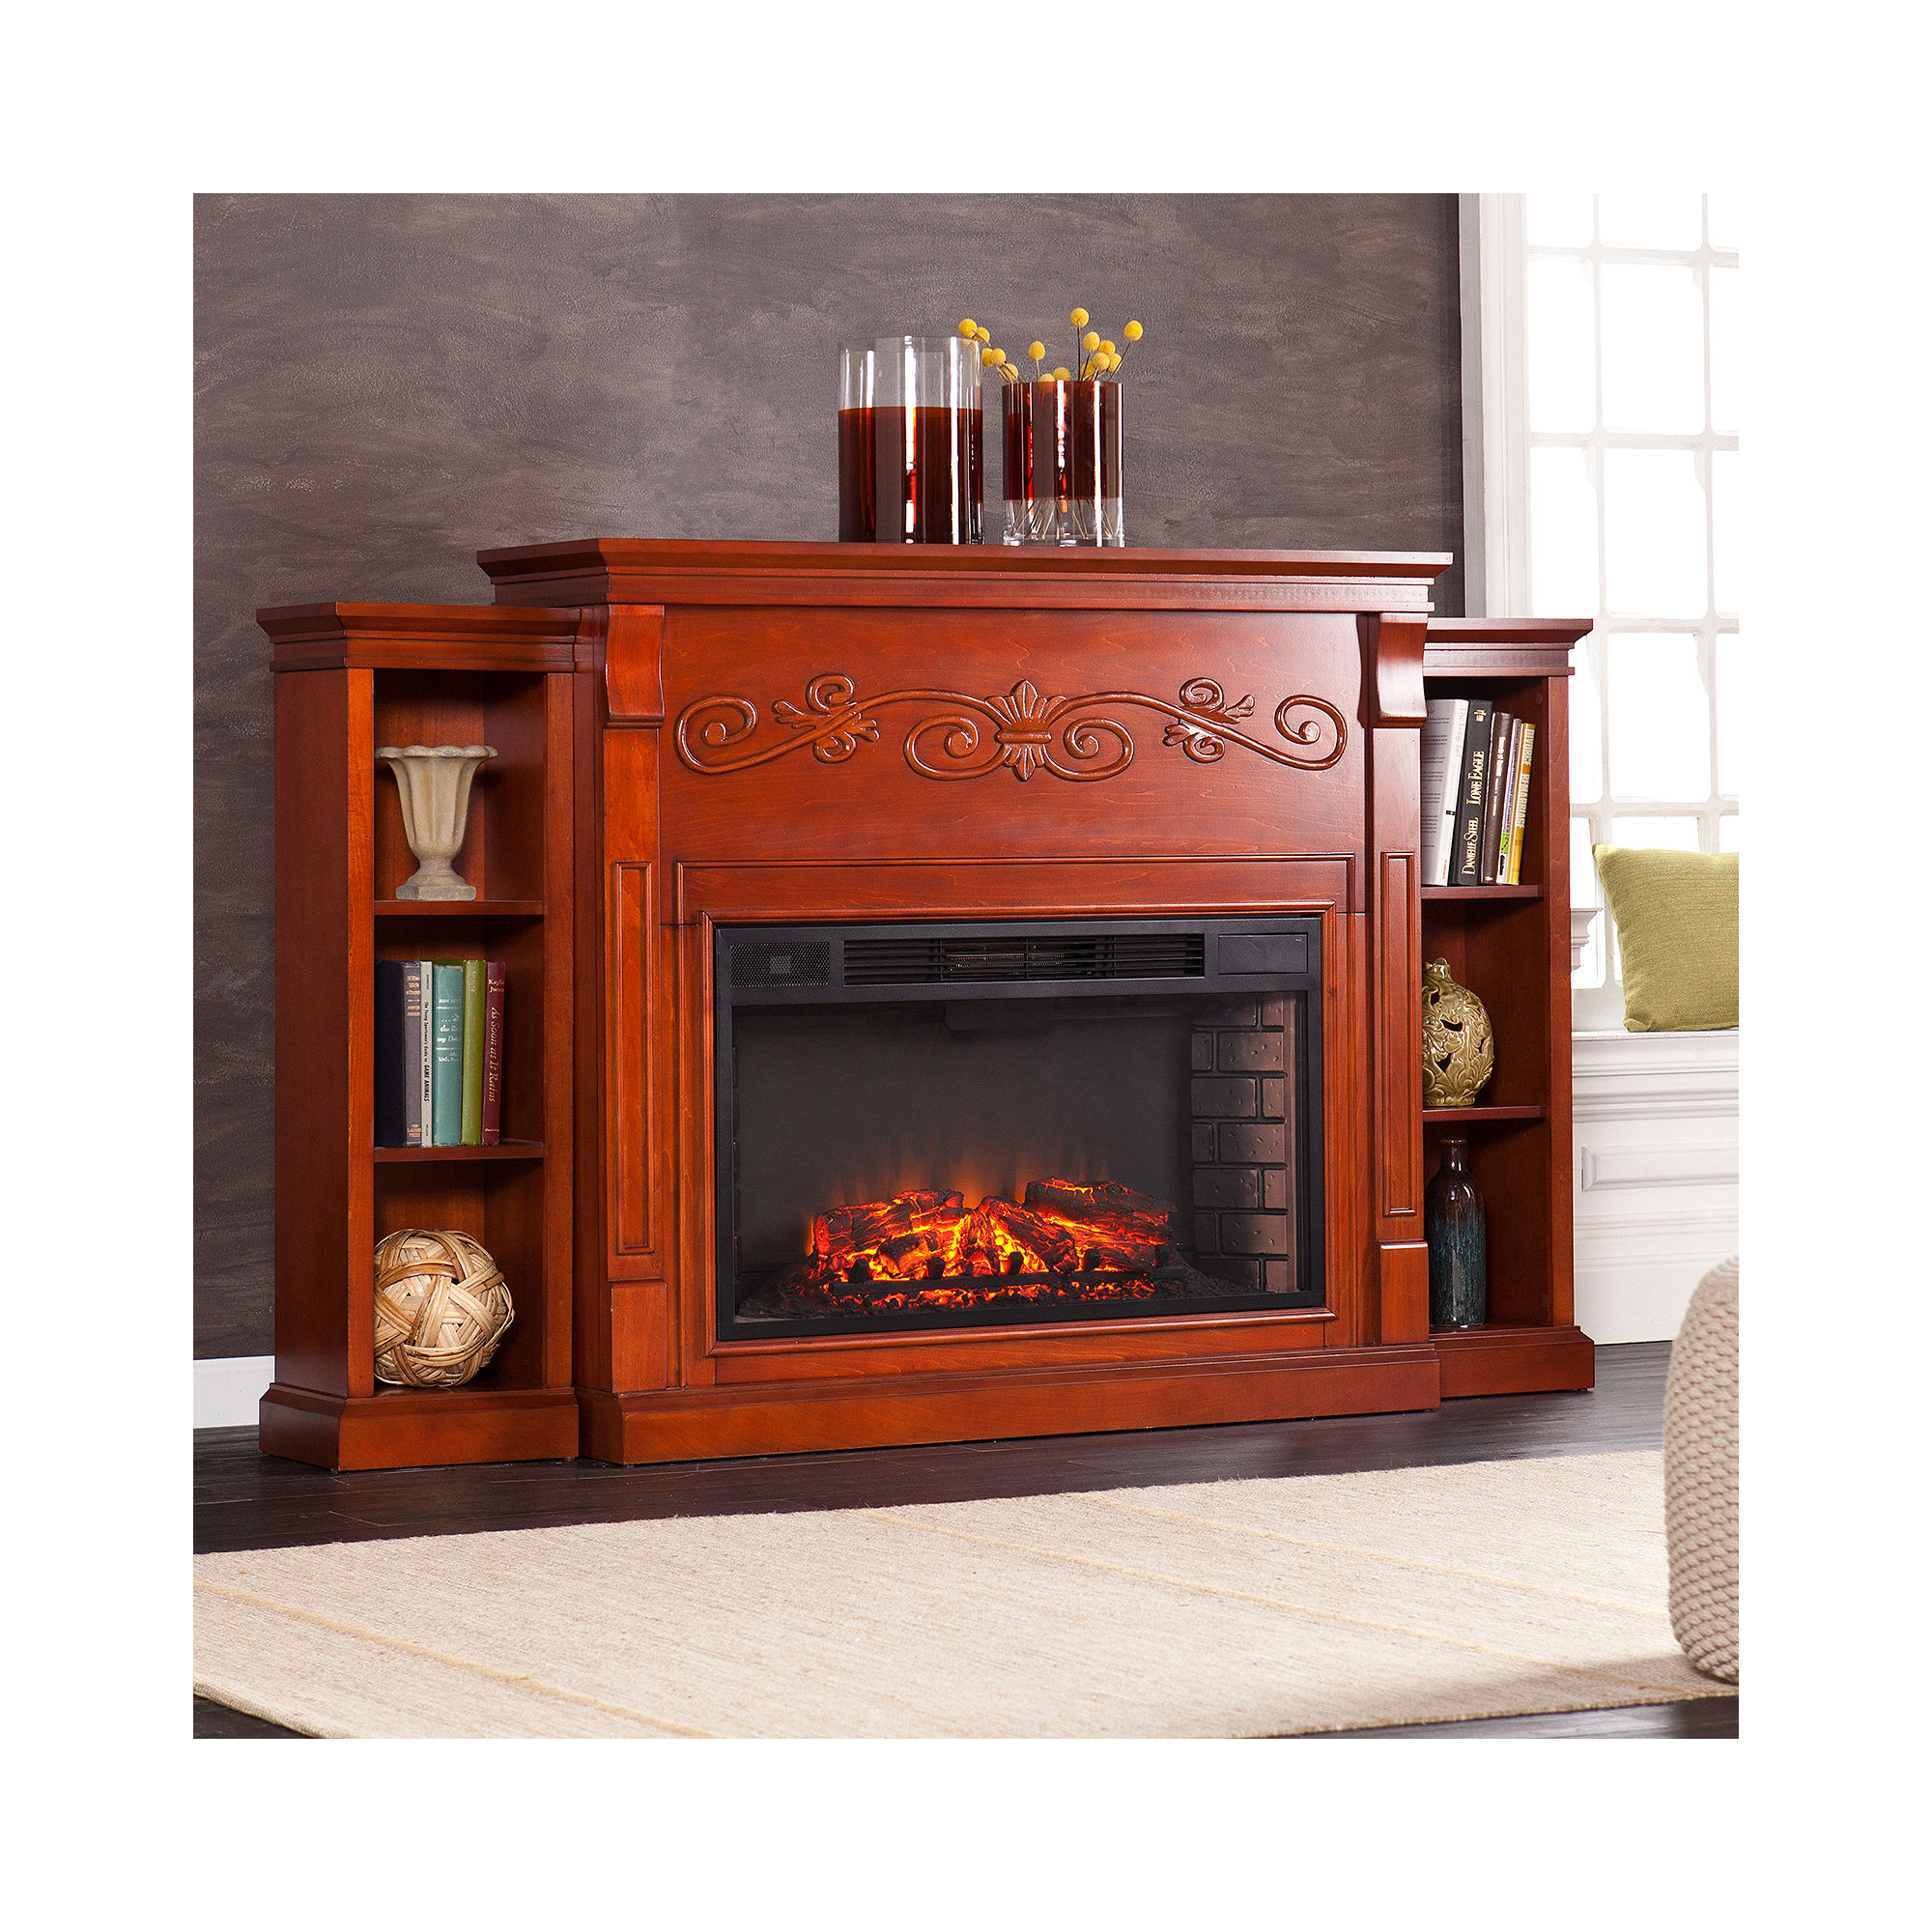 classic flame 23 electric fireplace with portland bookcase mantel 23ef004gra 23wm137poa. Black Bedroom Furniture Sets. Home Design Ideas